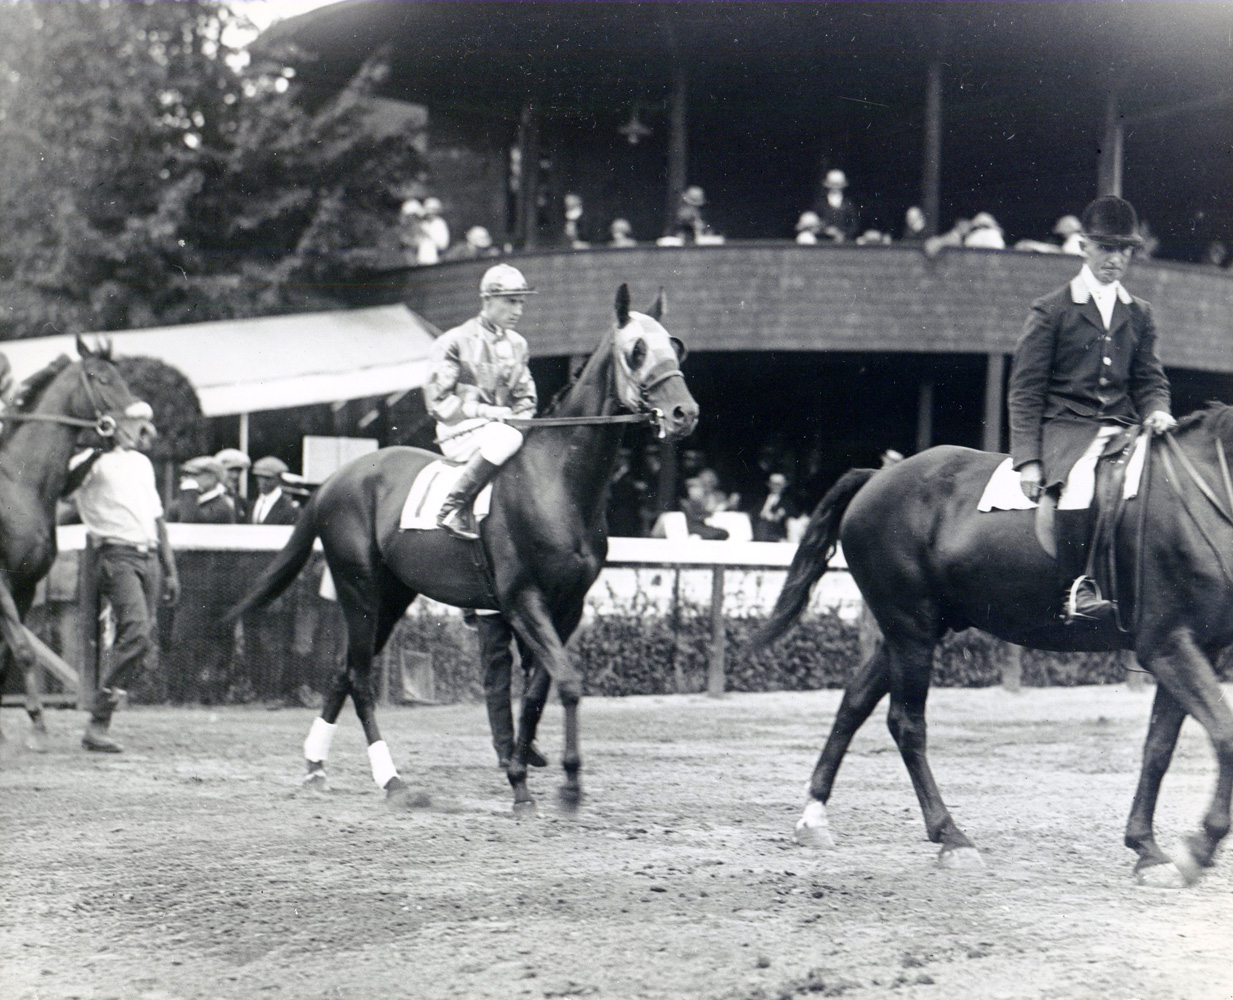 J. Linus McAtee and Bud Fisher entering the track for the 1st race at Saratoga on Aug. 11, 1922 (George S. Bolster/Museum Collection)